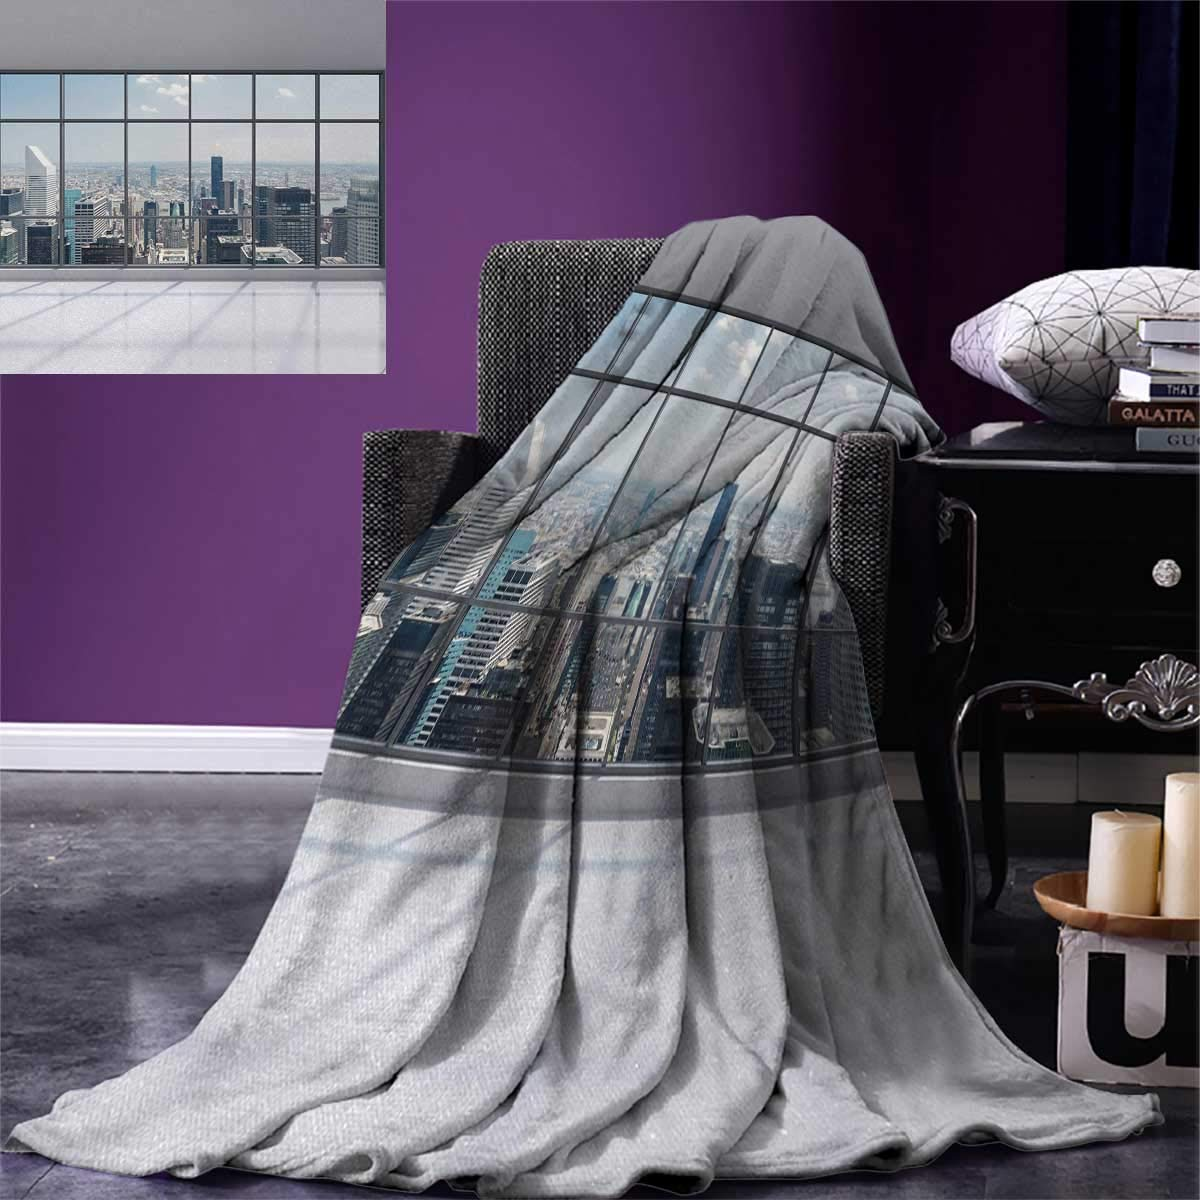 Anniutwo City Warm Microfiber All Season Blanket Clean Office Big Window Downtown Skyscraper Buildings Domestic Cityscape Art Print Image Blanket 62''x60'' Grey White